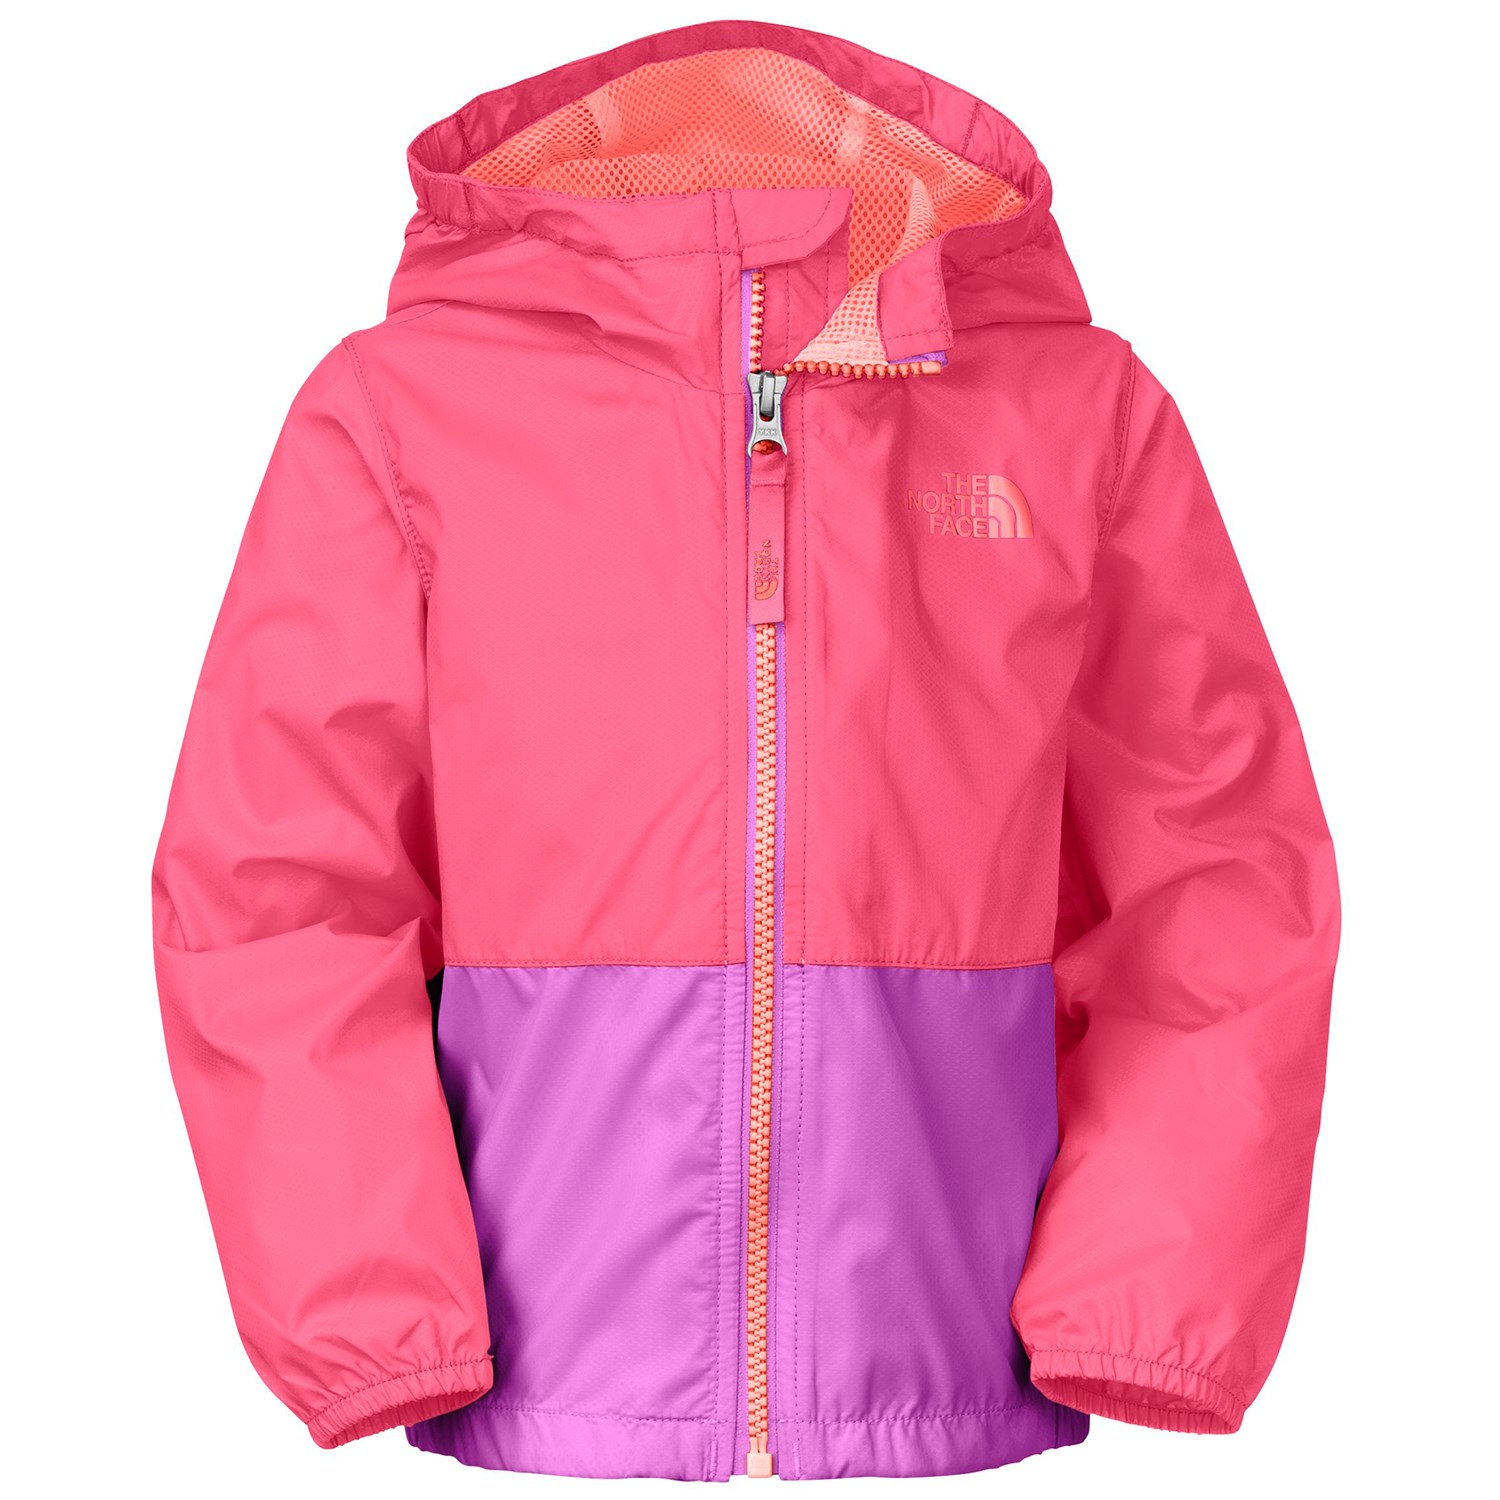 8d4643a6a The North Face Flurry Wind Hoodie - Toddler Girls' | evo